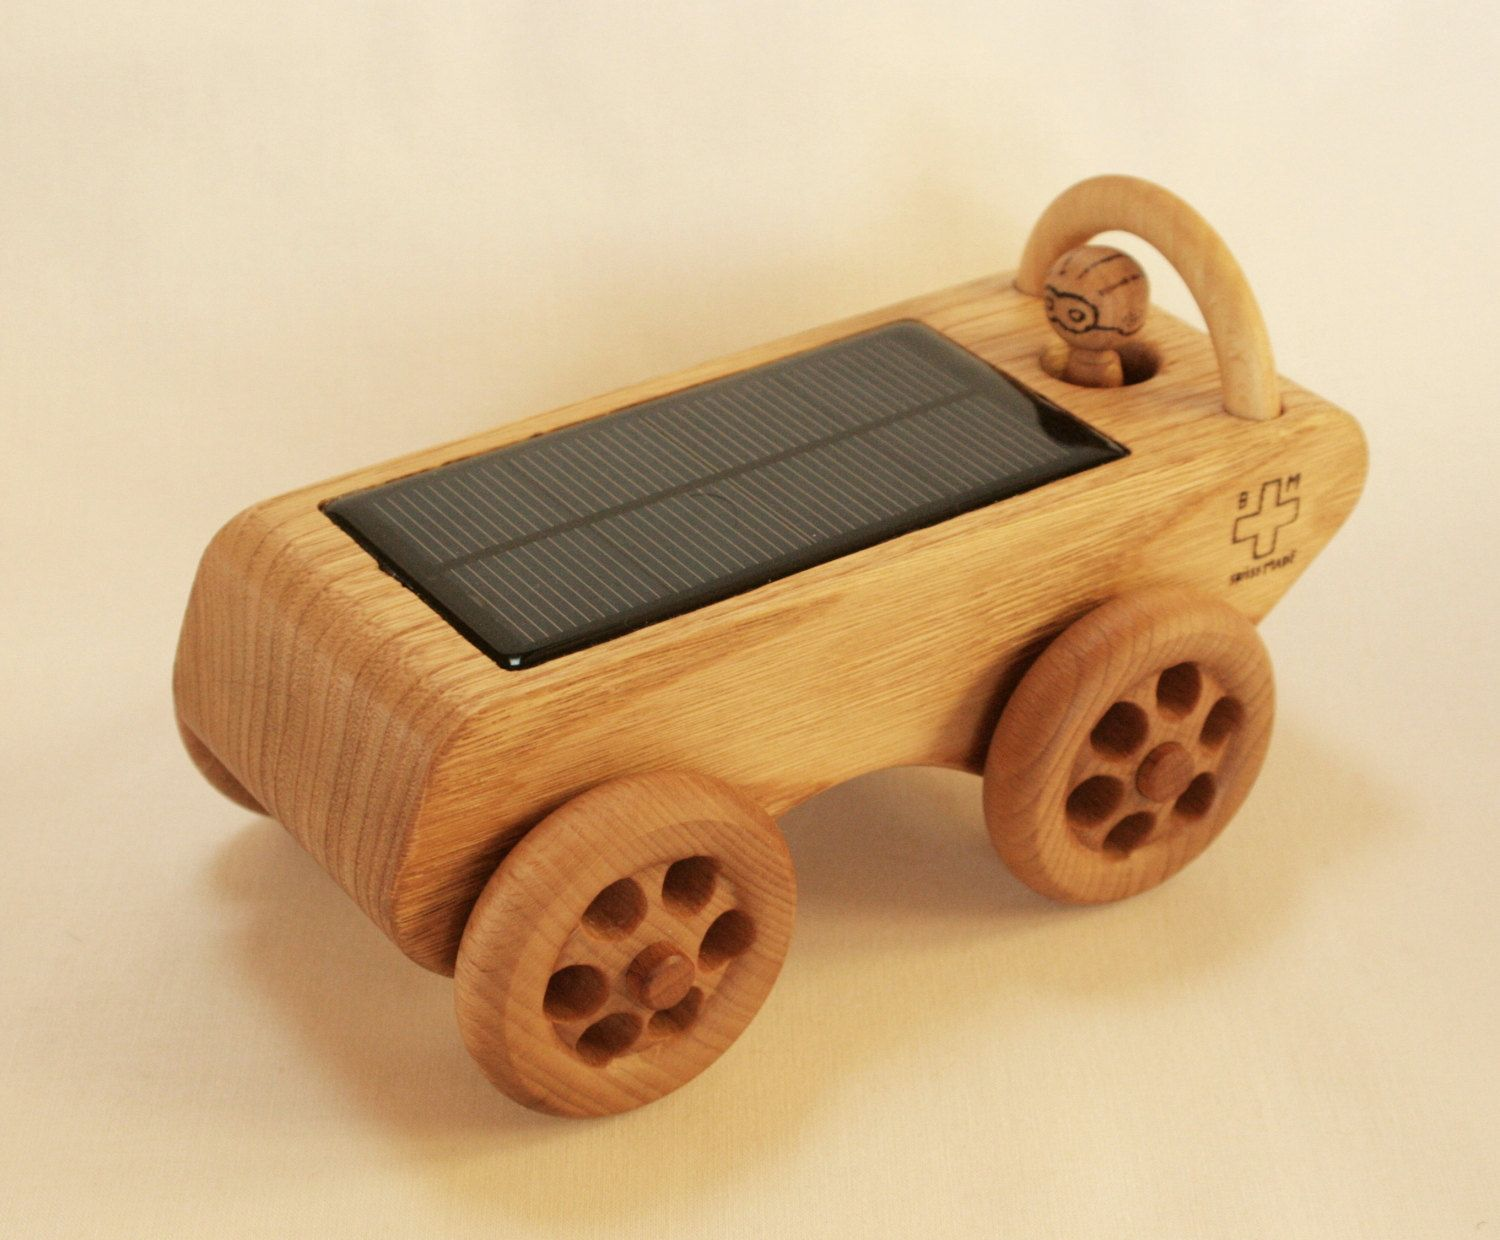 Toys beautiful and affordable all wood play kitchen sets inhabitots - Wooden Toy Car Solar Powered Eco Friendly A Solar Car That Drives